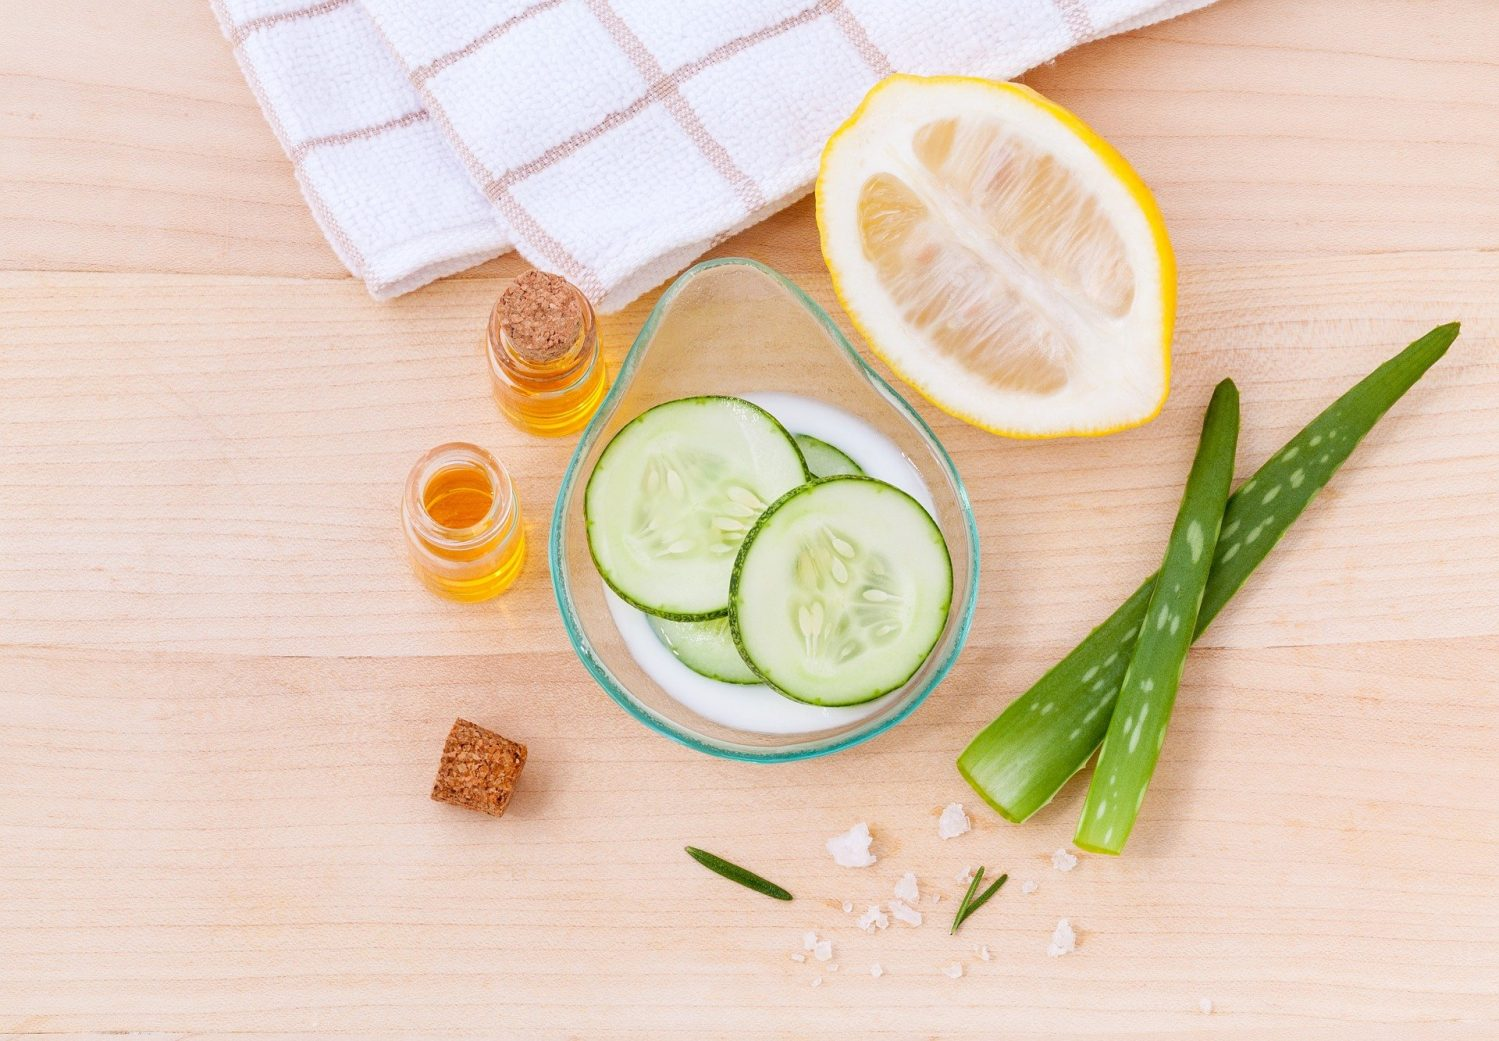 My Favorite Clean Living Products